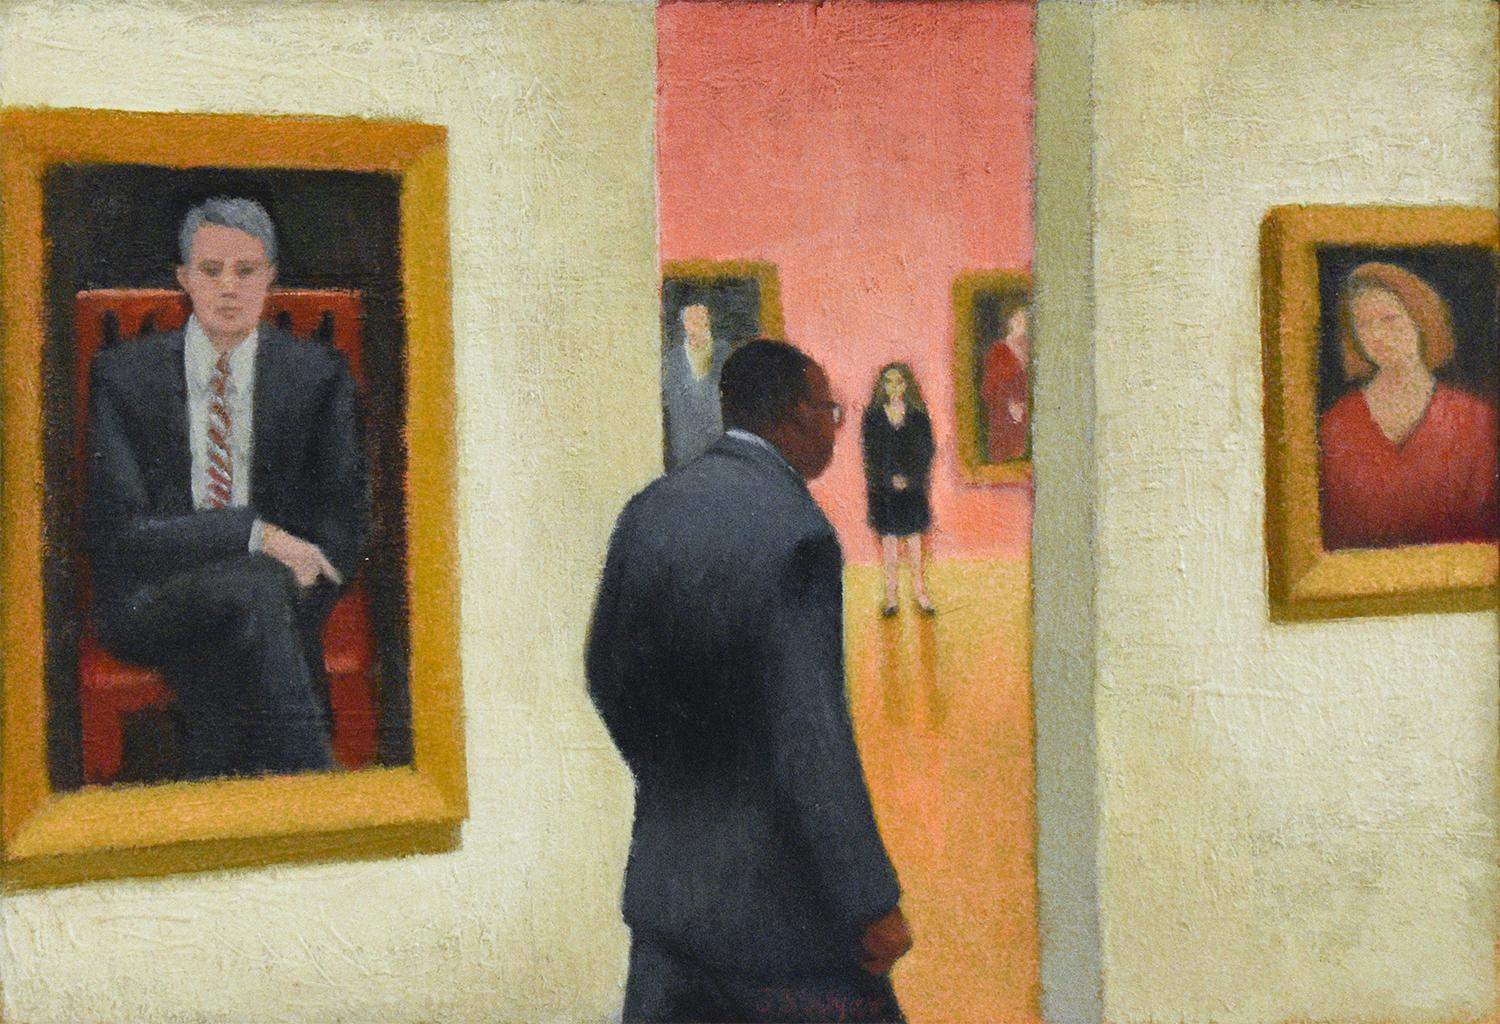 Connoisseurs (Figurative Painting of a Museum Guard with Portrait Paintings)